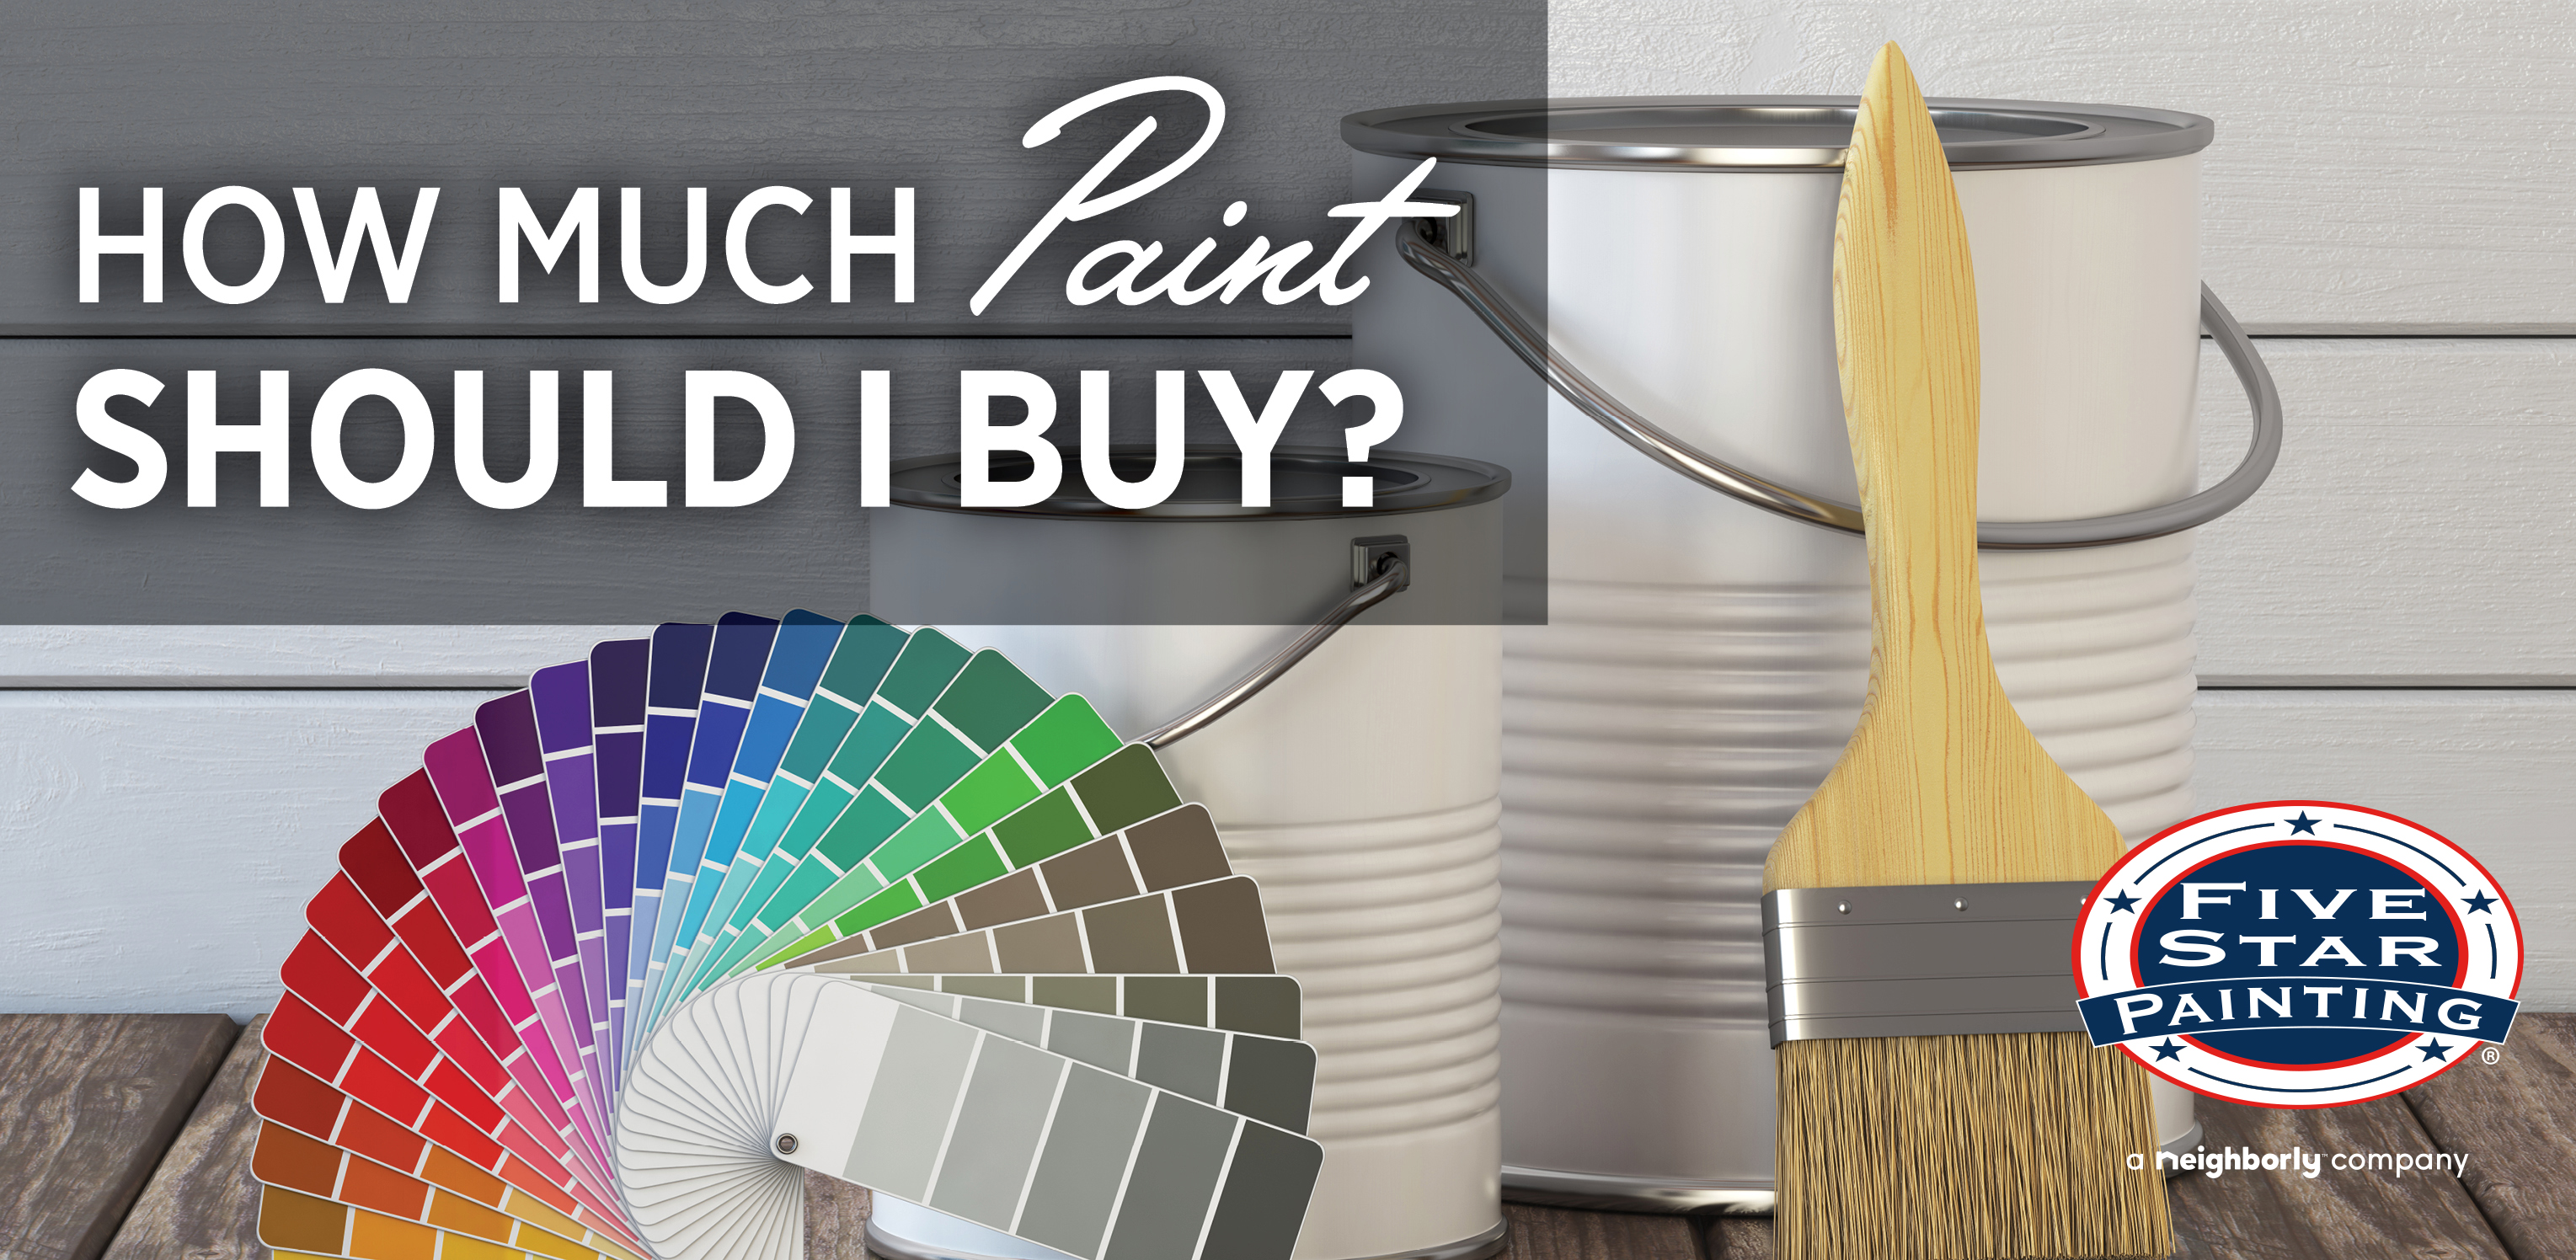 Knowing How Much Paint To Buy